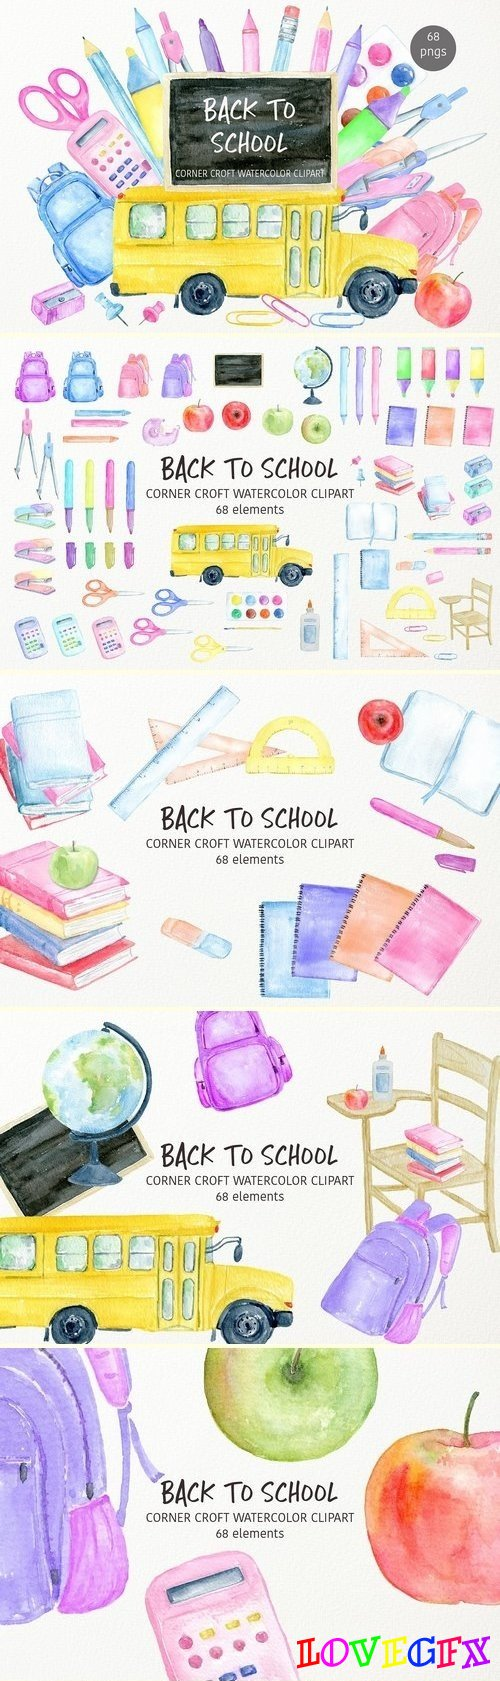 Back to school clipart 2924772